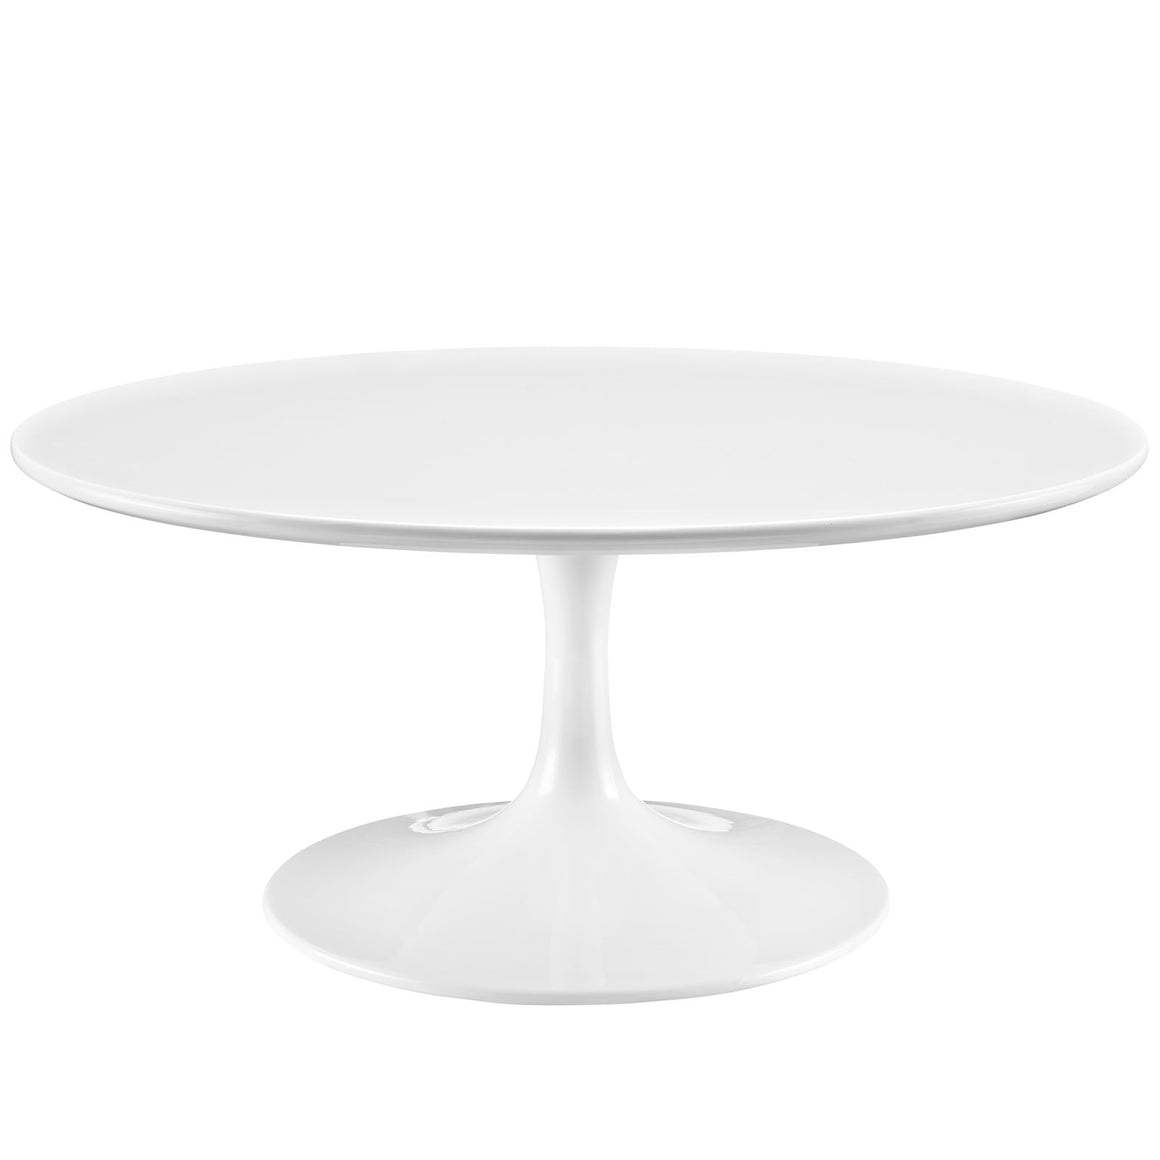 "LIPPA 36"" COFFEE TABLE IN WHITE"